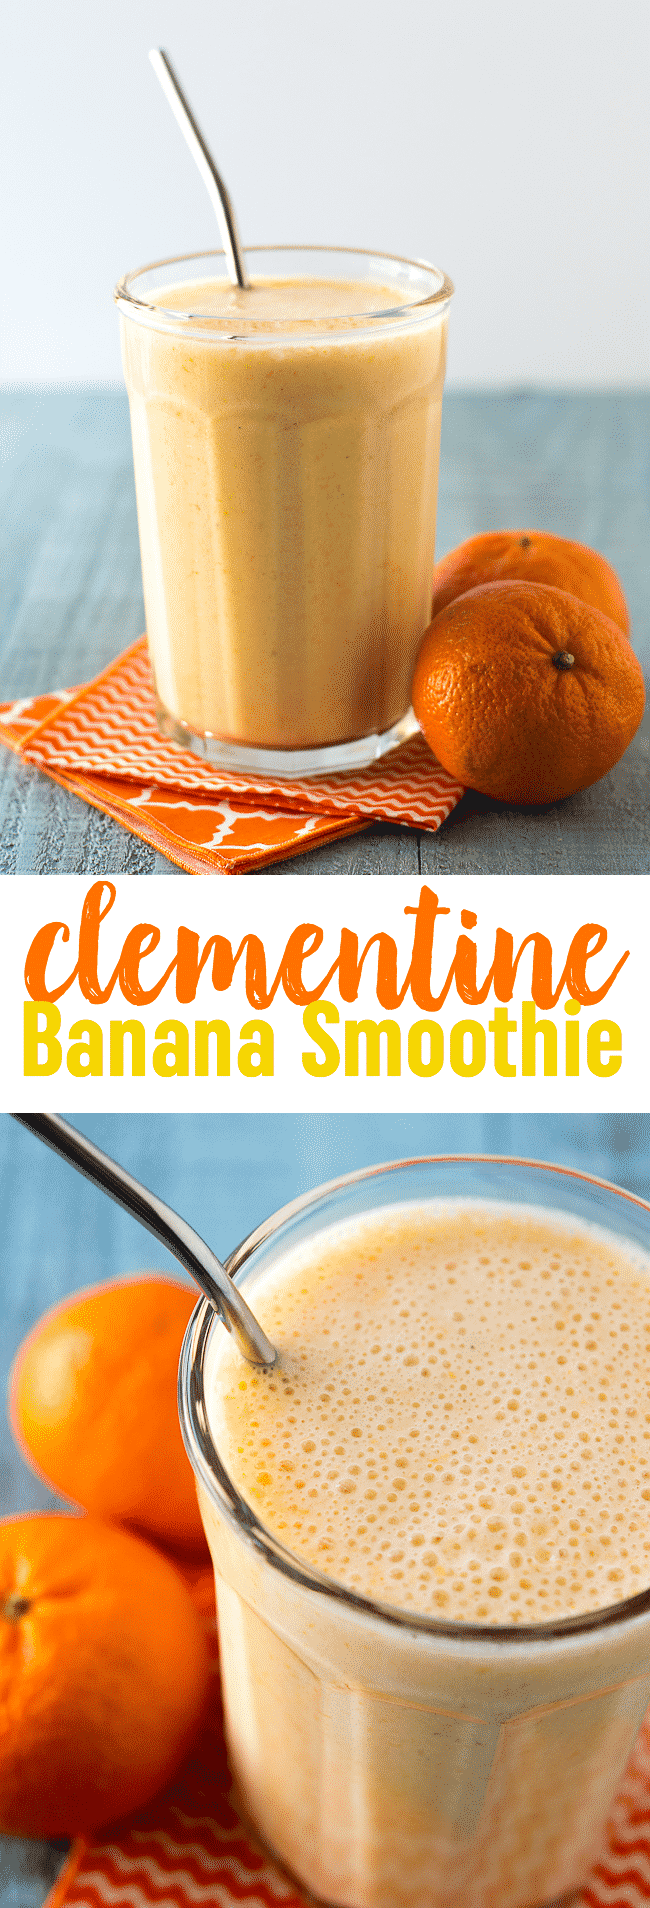 Clementine Banana Smoothie Recipe | Orange Banana Smoothie | Sunshine Smoothie Recipe | Vitamin C Smoothie | Cuties | Mandarin